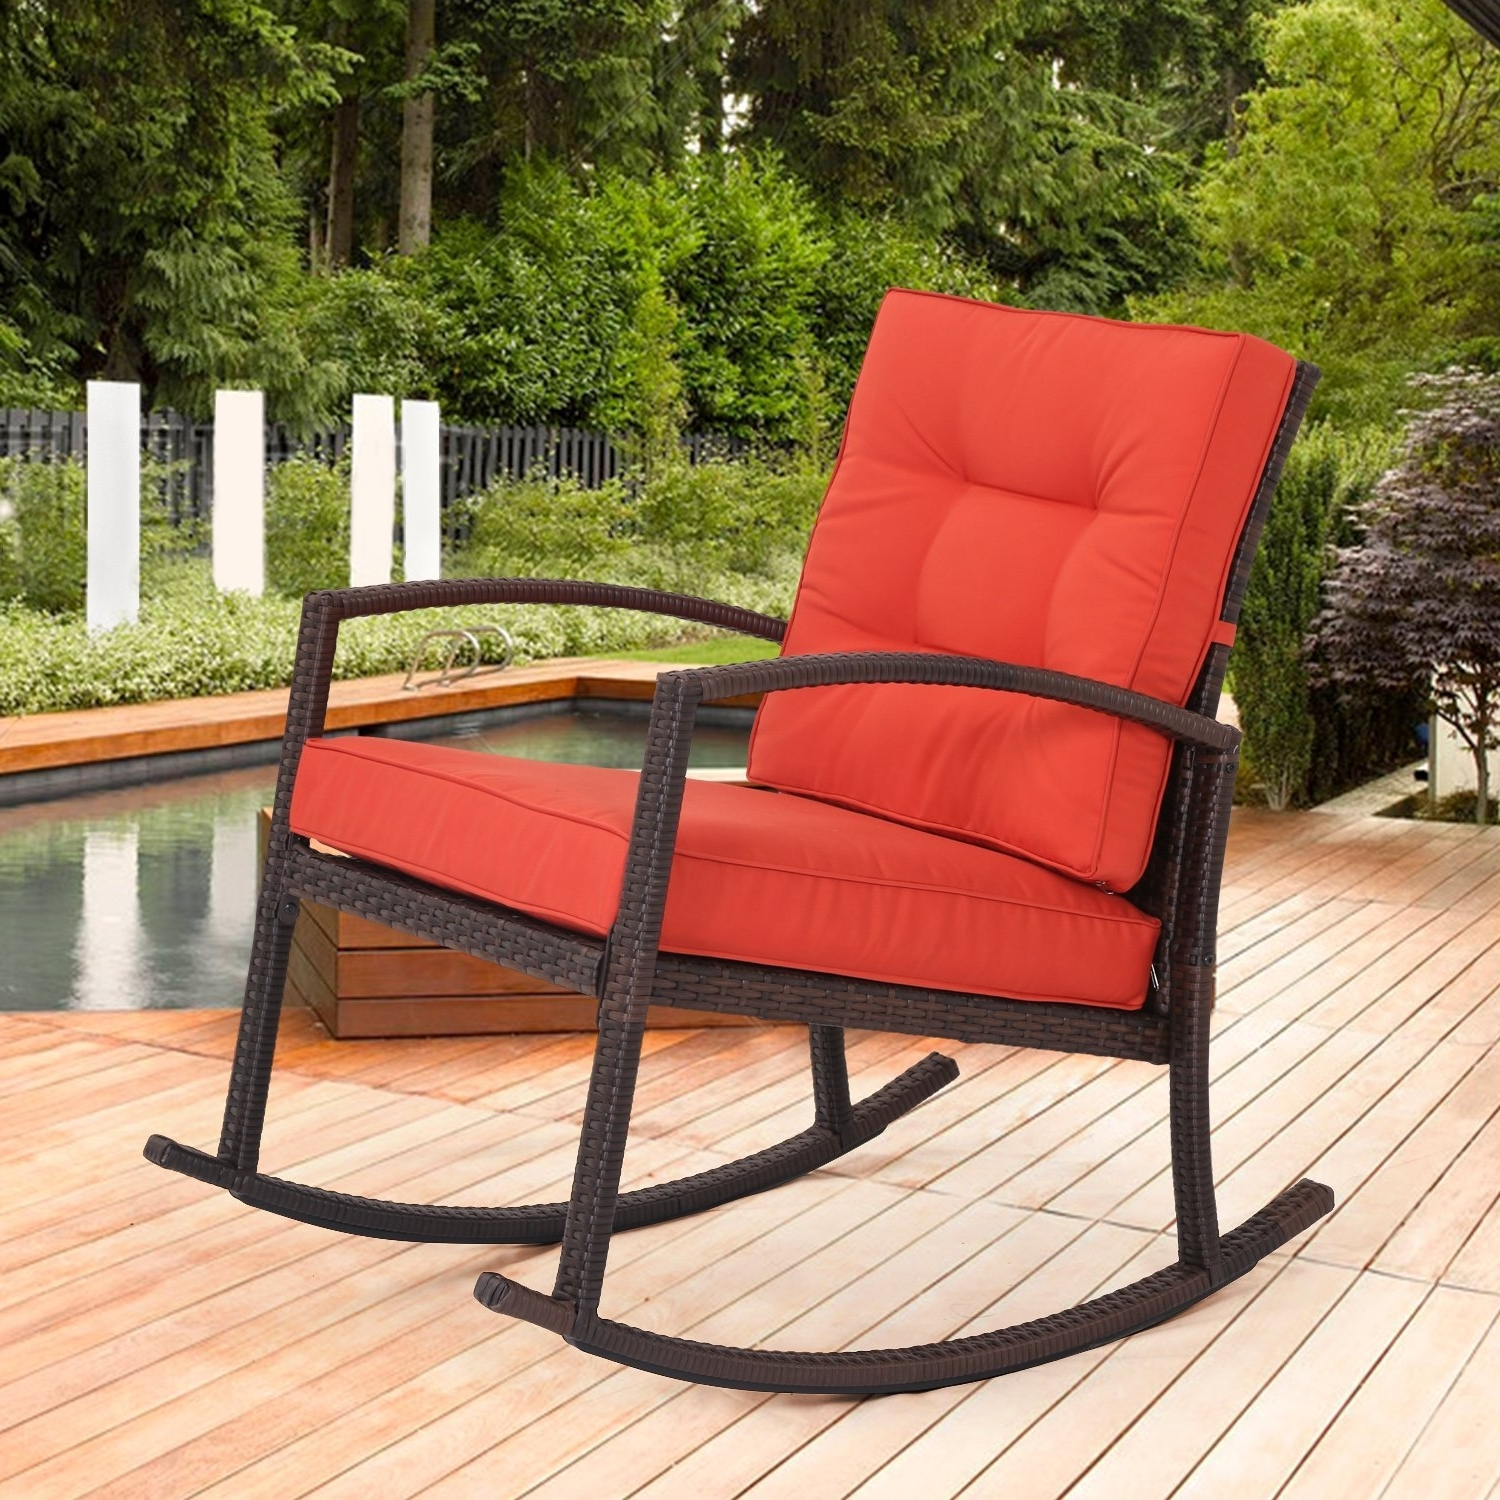 Trendy Stackable Patio Rocking Chairs Pertaining To Patio : Patio Furniture Cushions Matching Umbrella Lovely Furniture (View 19 of 20)